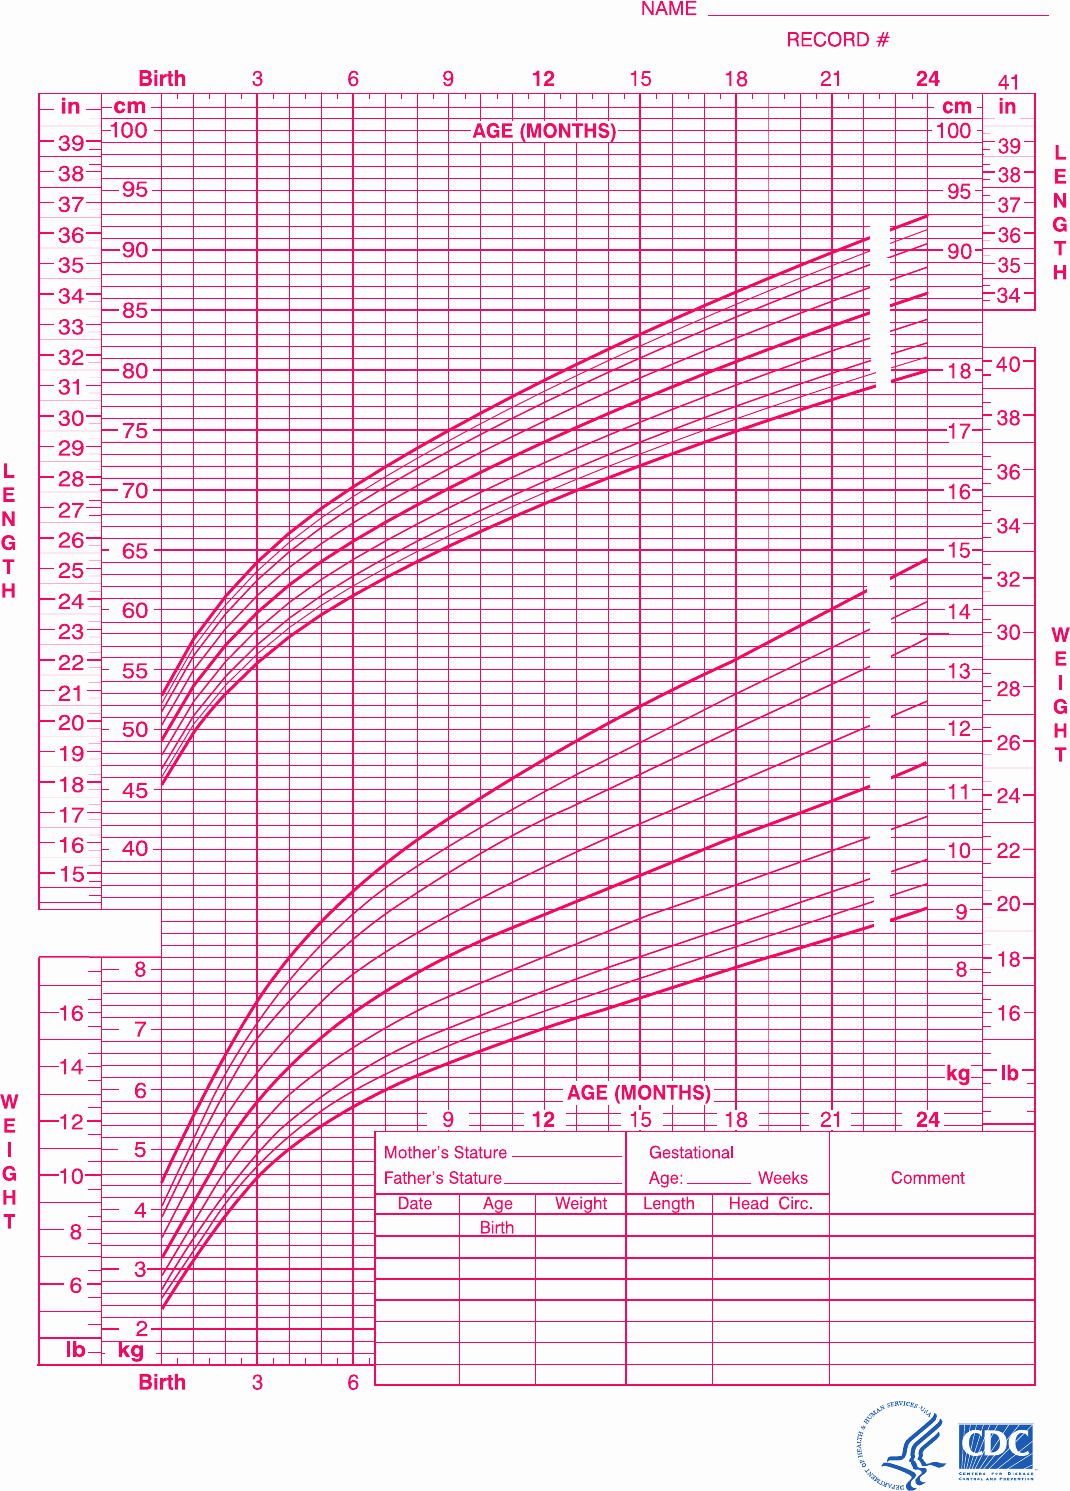 Baby Girl Growth Chart Awesome Download Baby Girl Growth Chart for Birth to 24 Months for